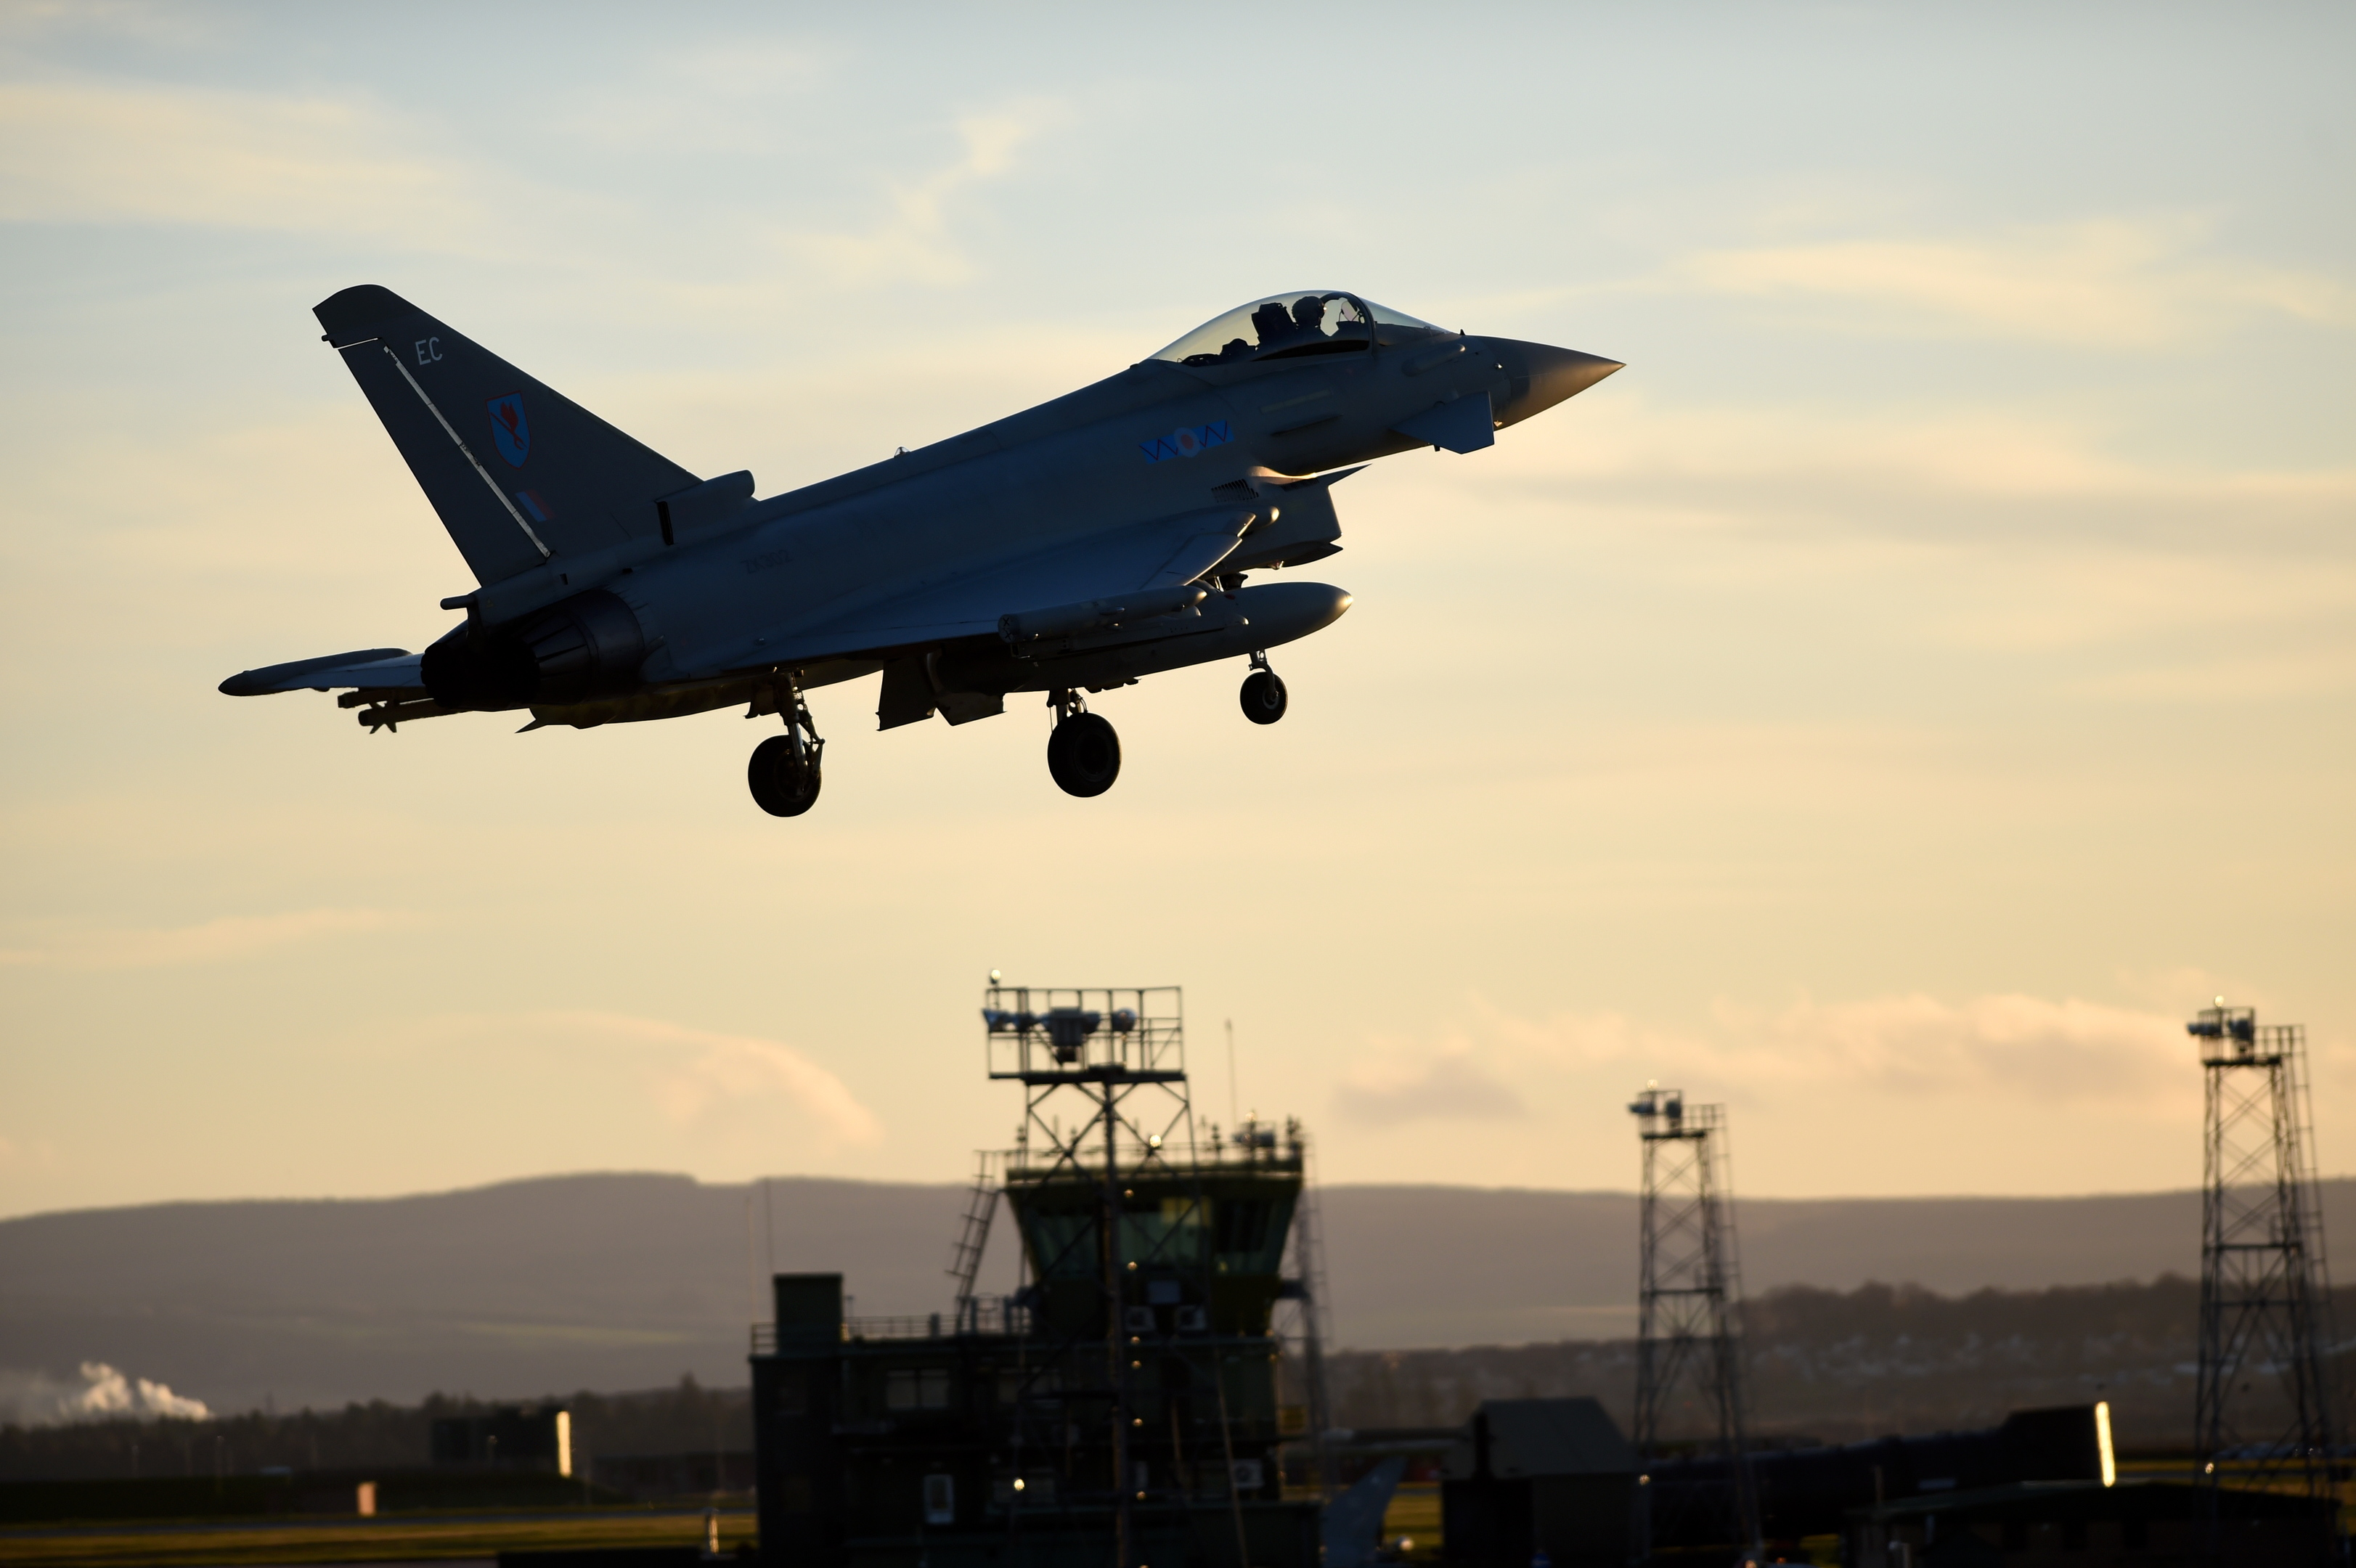 A Typhoon aircraft with its landing gear down approaches RAF Lossiemouth.